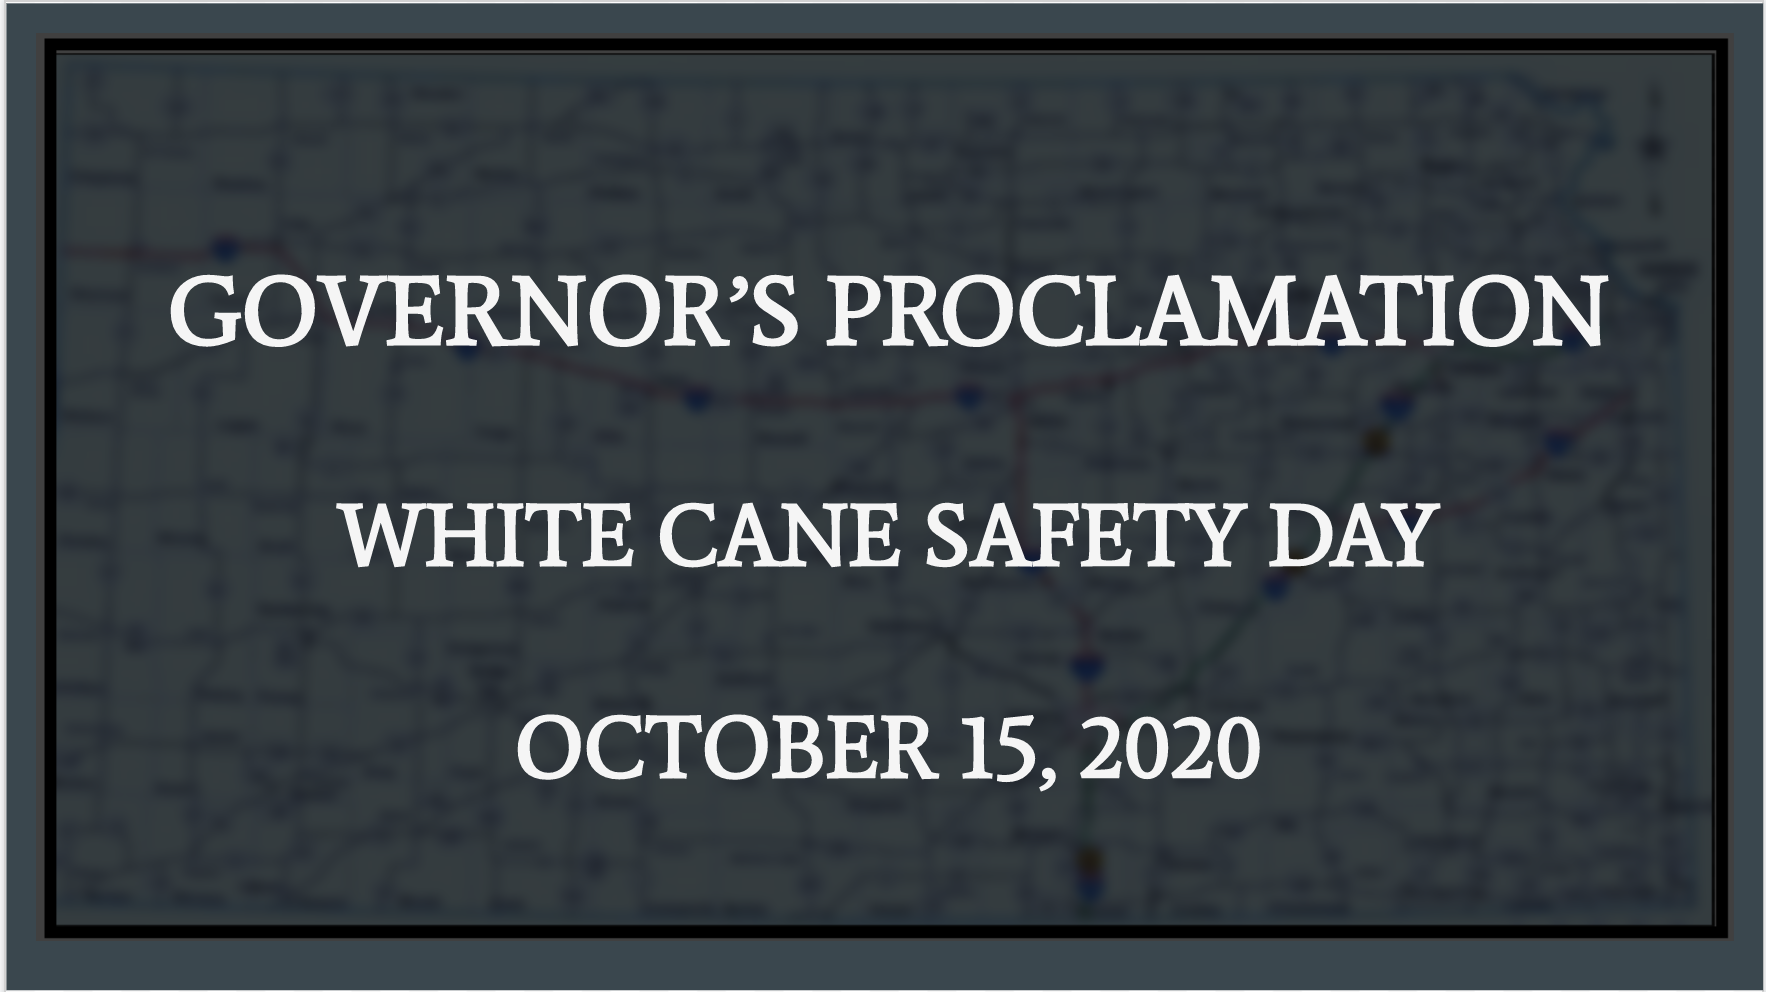 Governor's Proclamation White Cane Safety Day, October 15, 2020 typed over a faded map of kansas